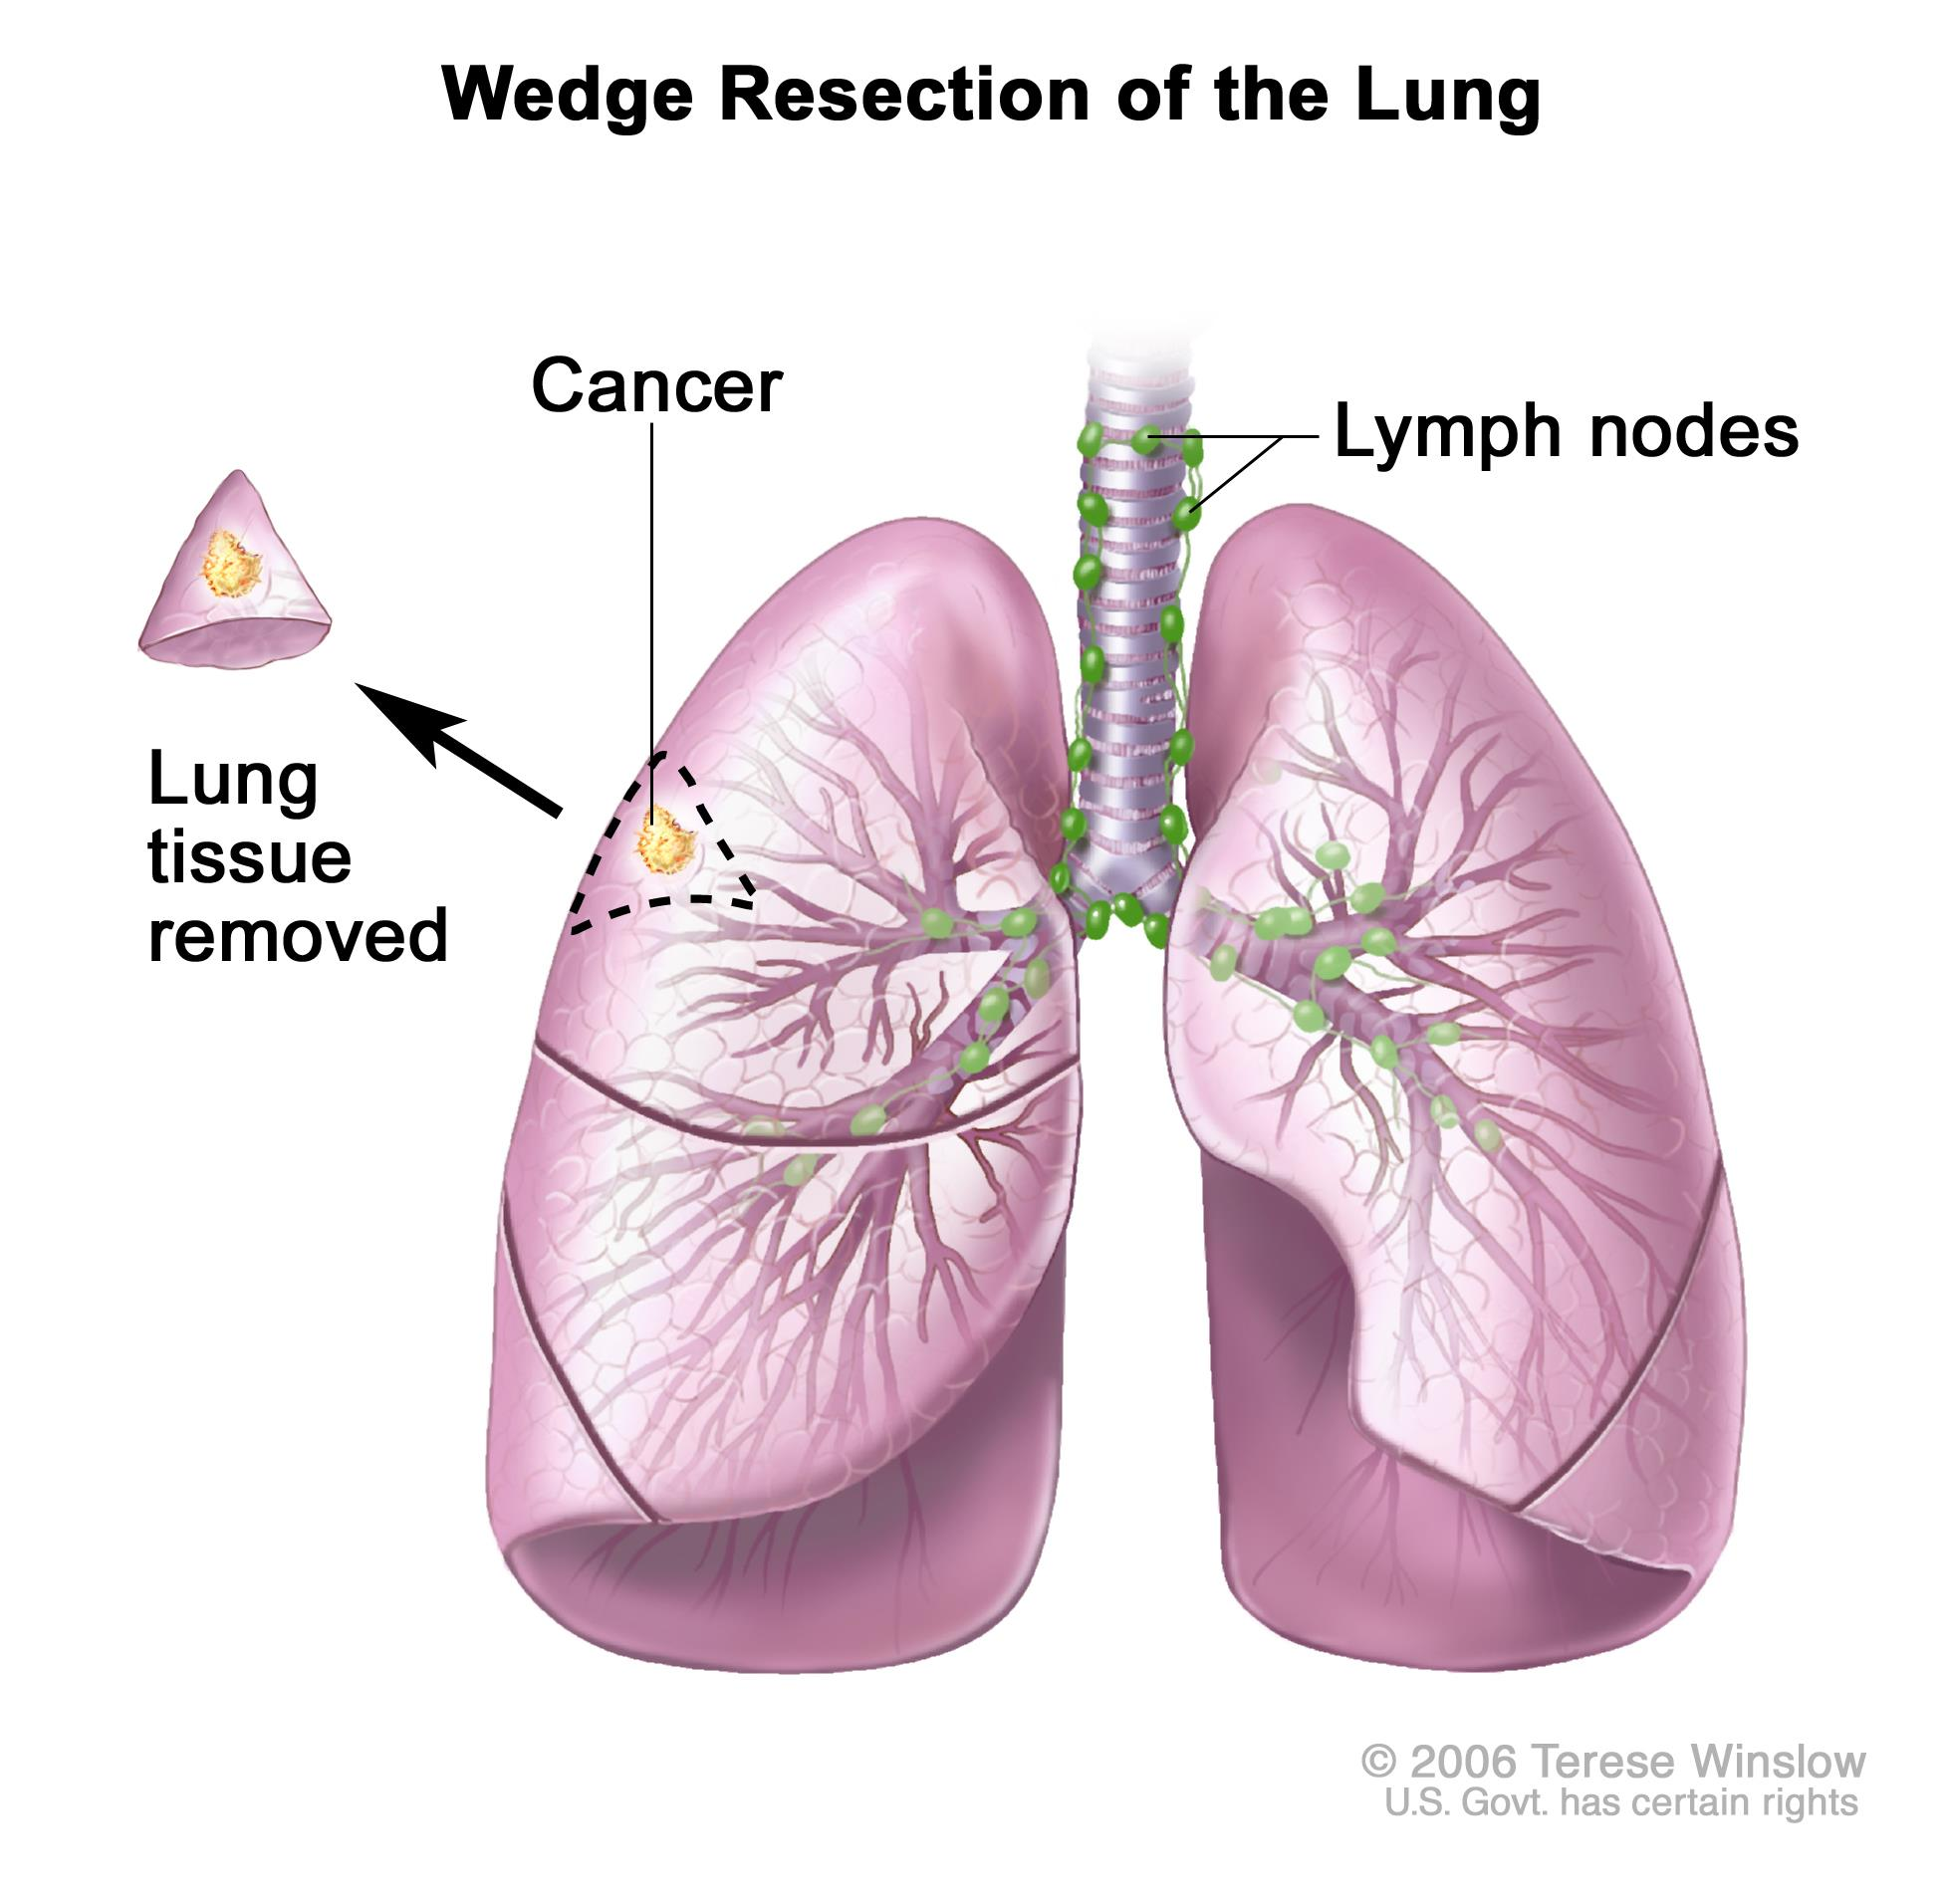 Non small cell lung cancer treatment pdqpatient version enlarge wedge resection of the lung ccuart Images